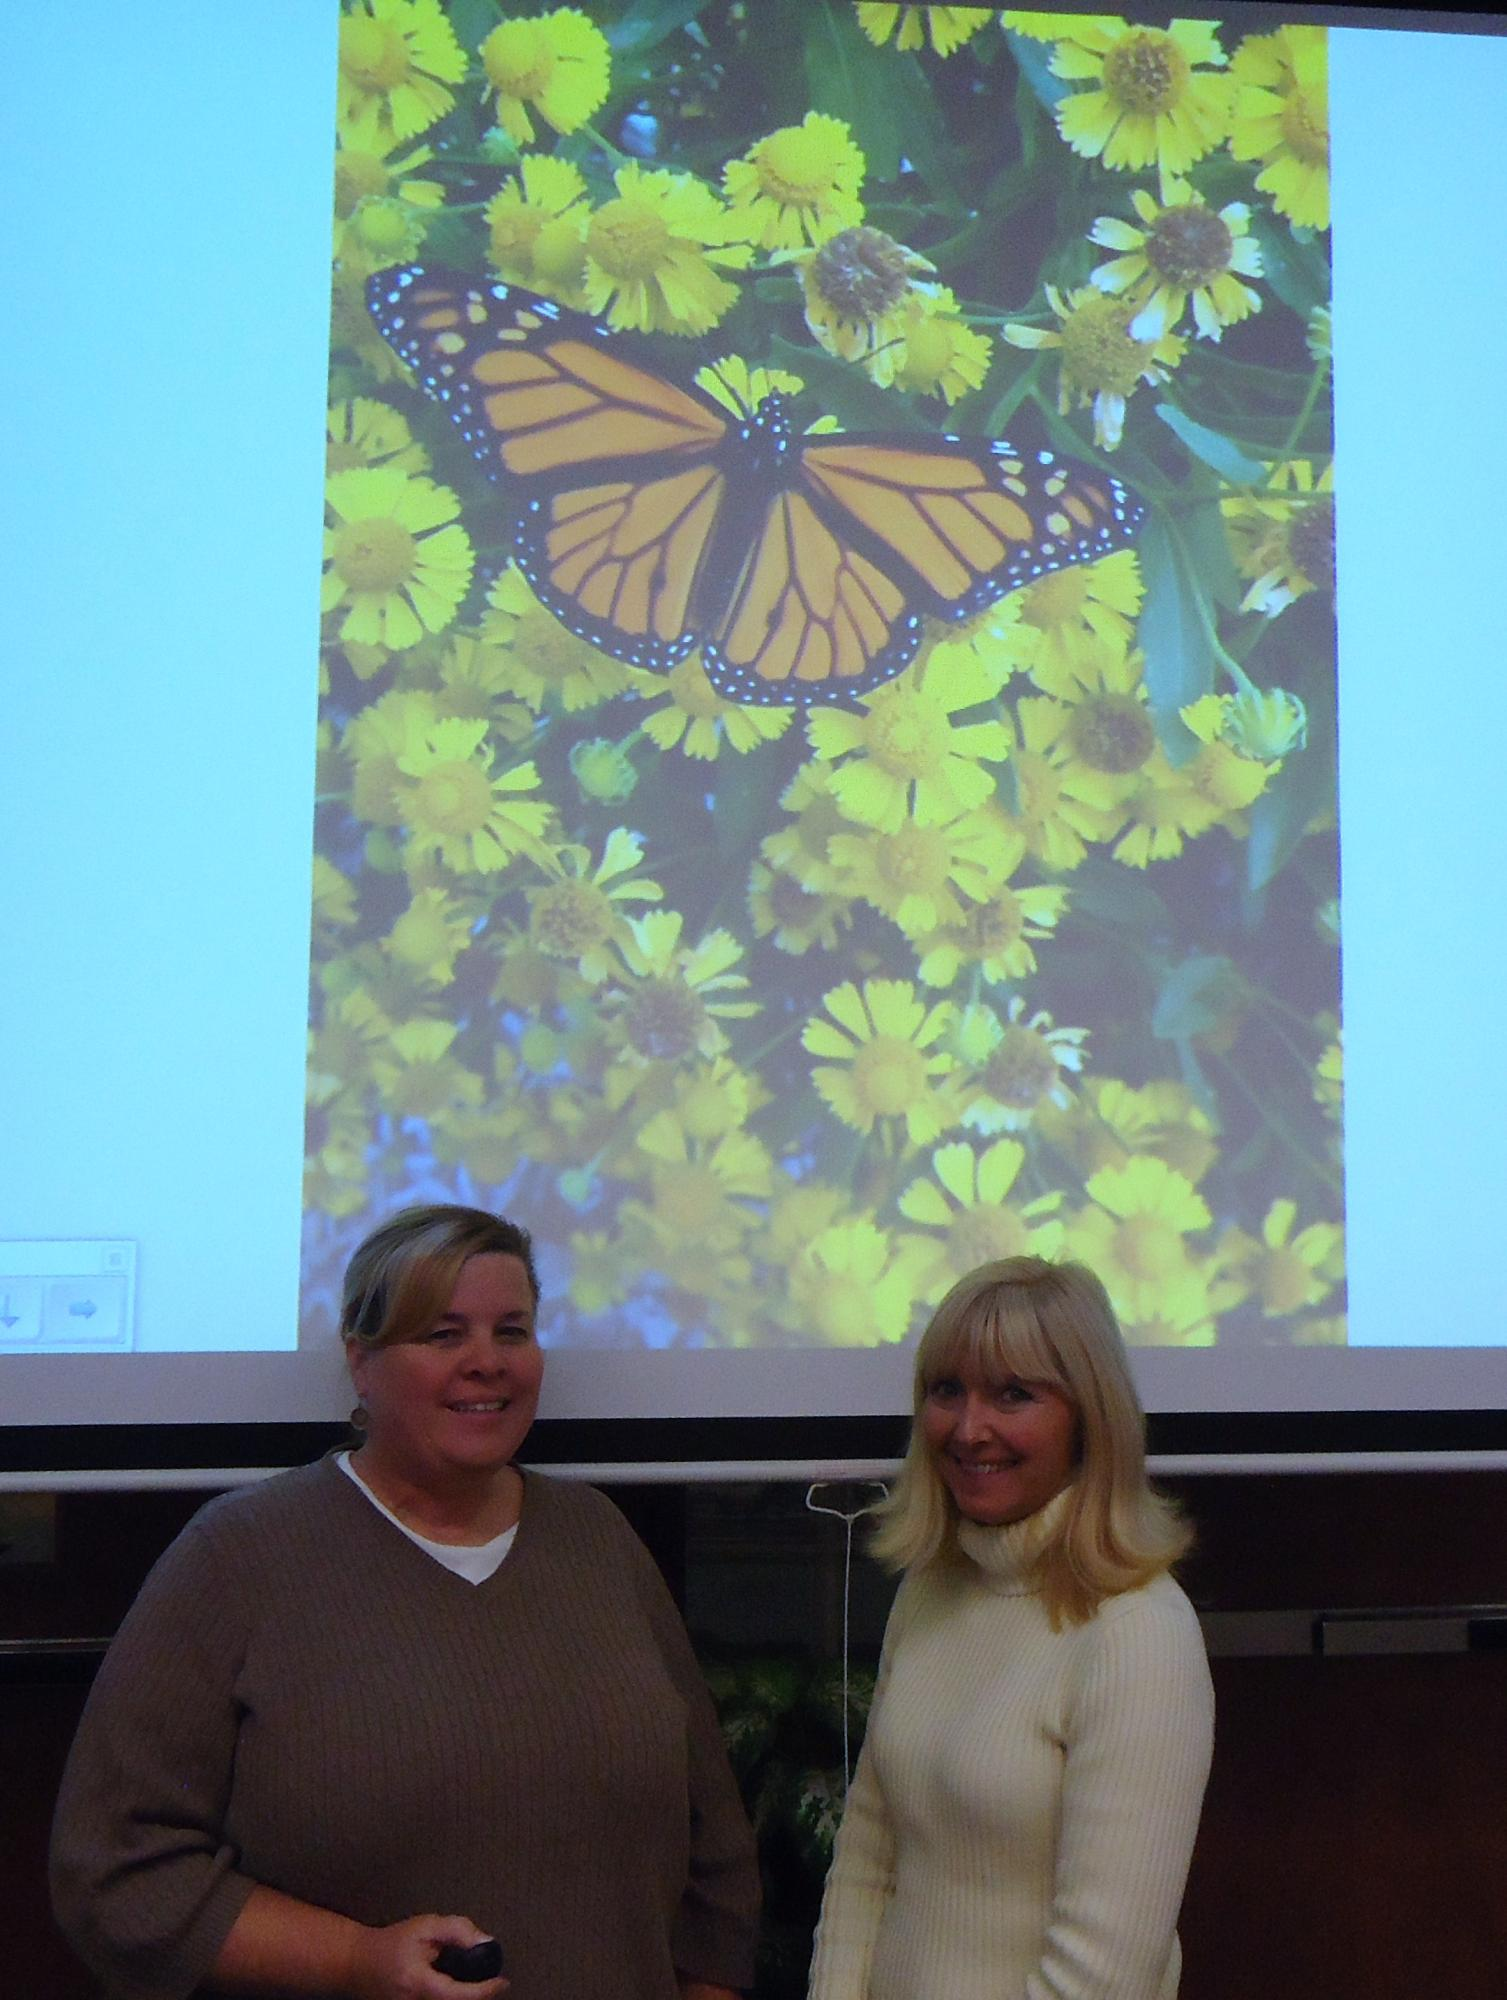 PHS_Spring_2012_Grant_Winners_presenting_their_Learning_Garden_at_BOD_mtg_Oct7889.JPG